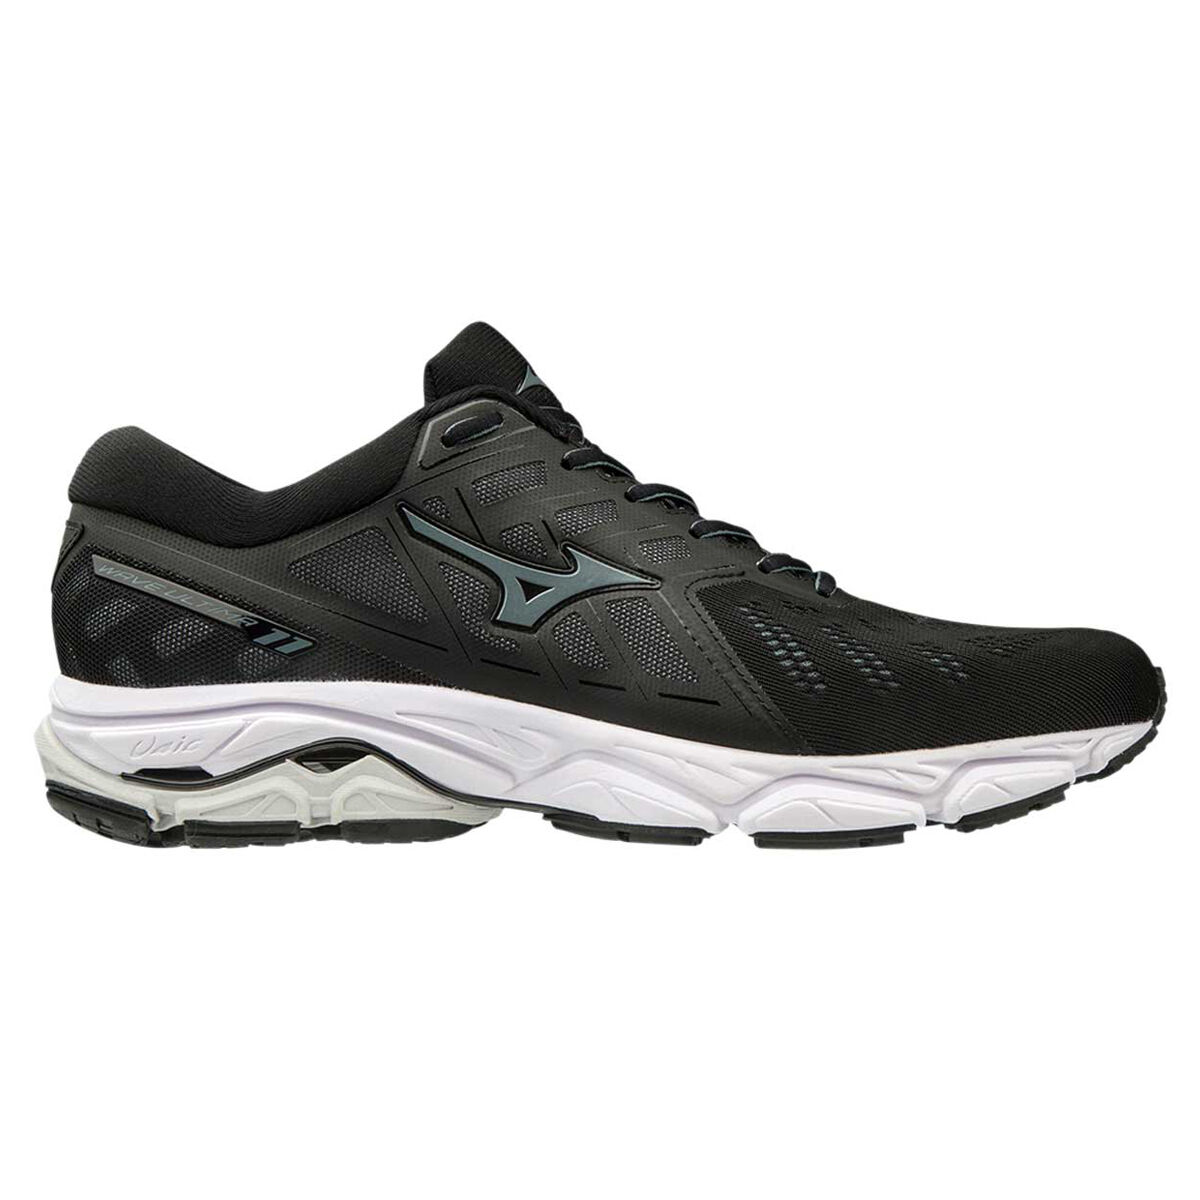 mizuno wave ultima 11 42.5 dimension